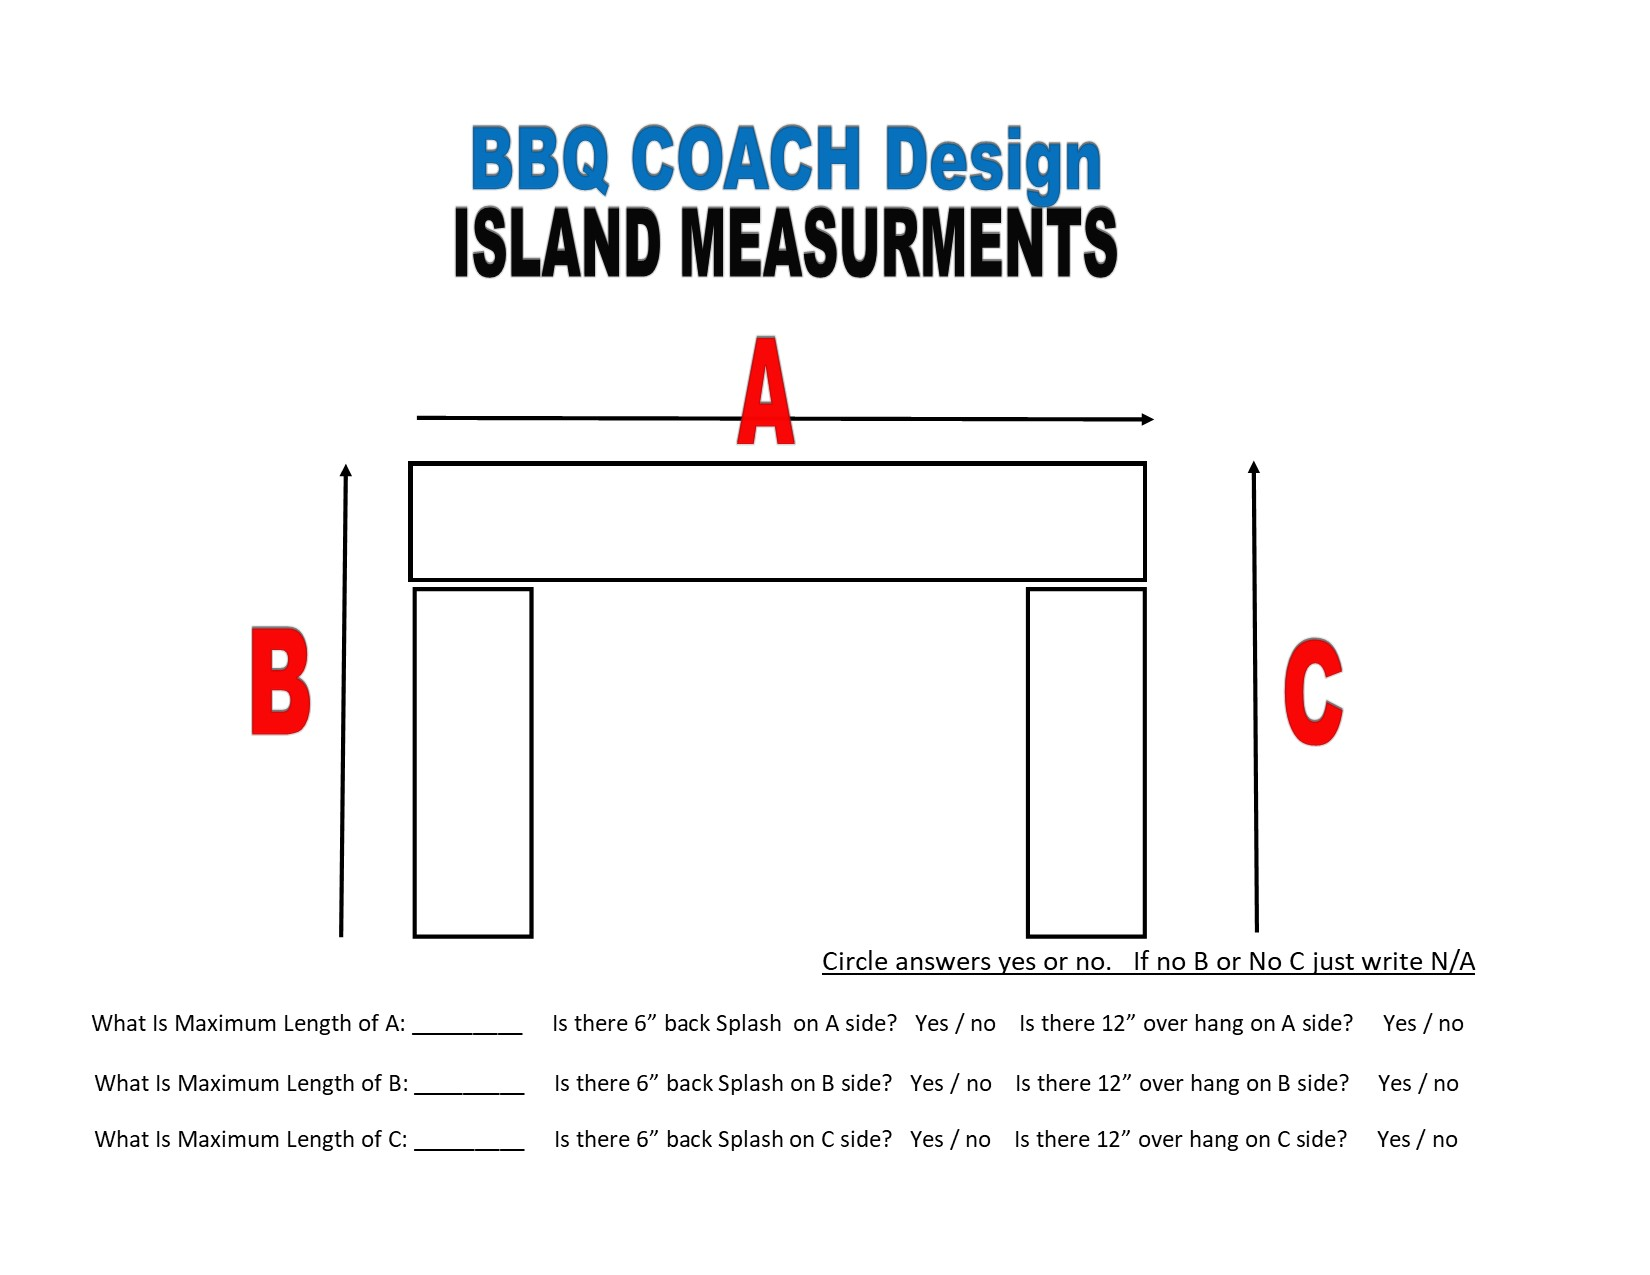 island-design-measurements.jpg